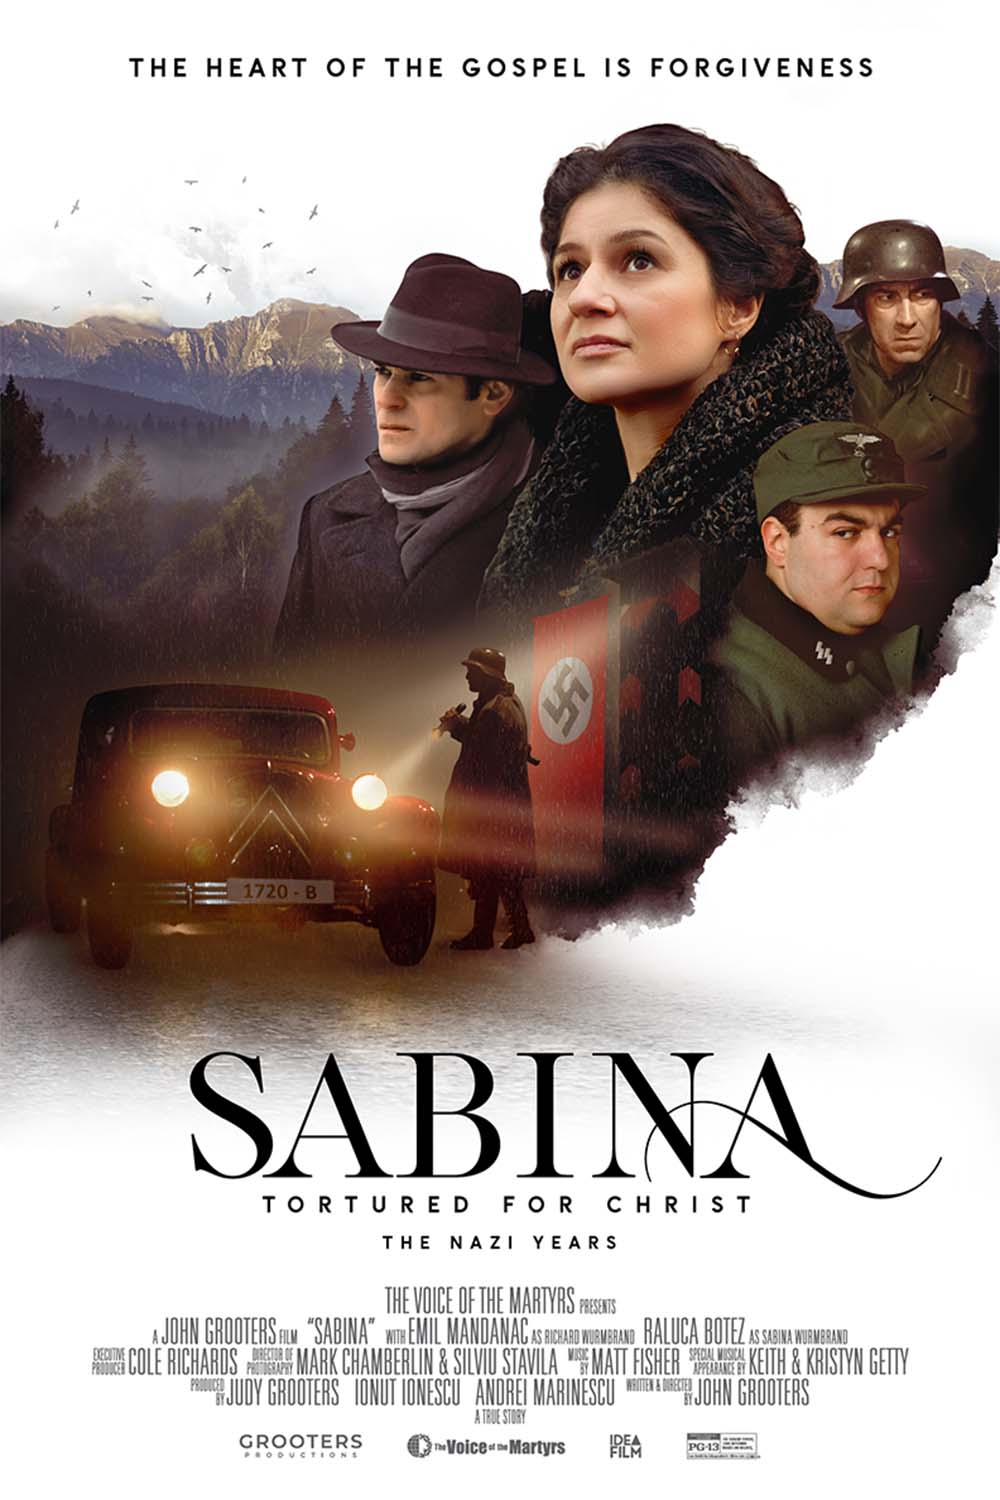 Movie poster showing faces from Sabina the movie